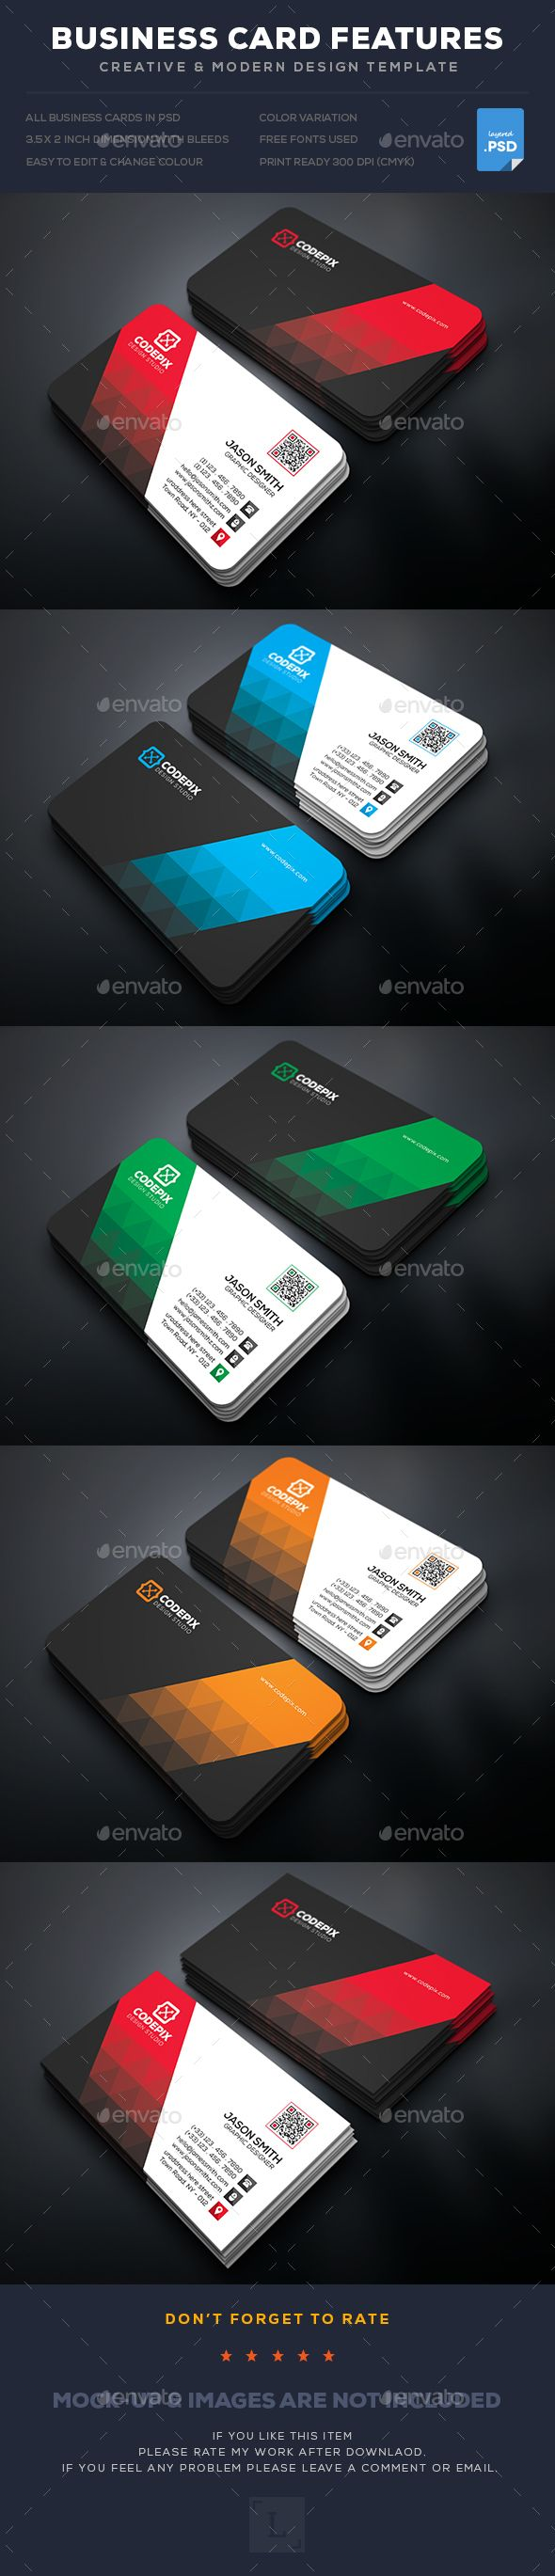 Business Card Template PSD. Download here: https://graphicriver.net/item/business-card/17341528?ref=ksioks